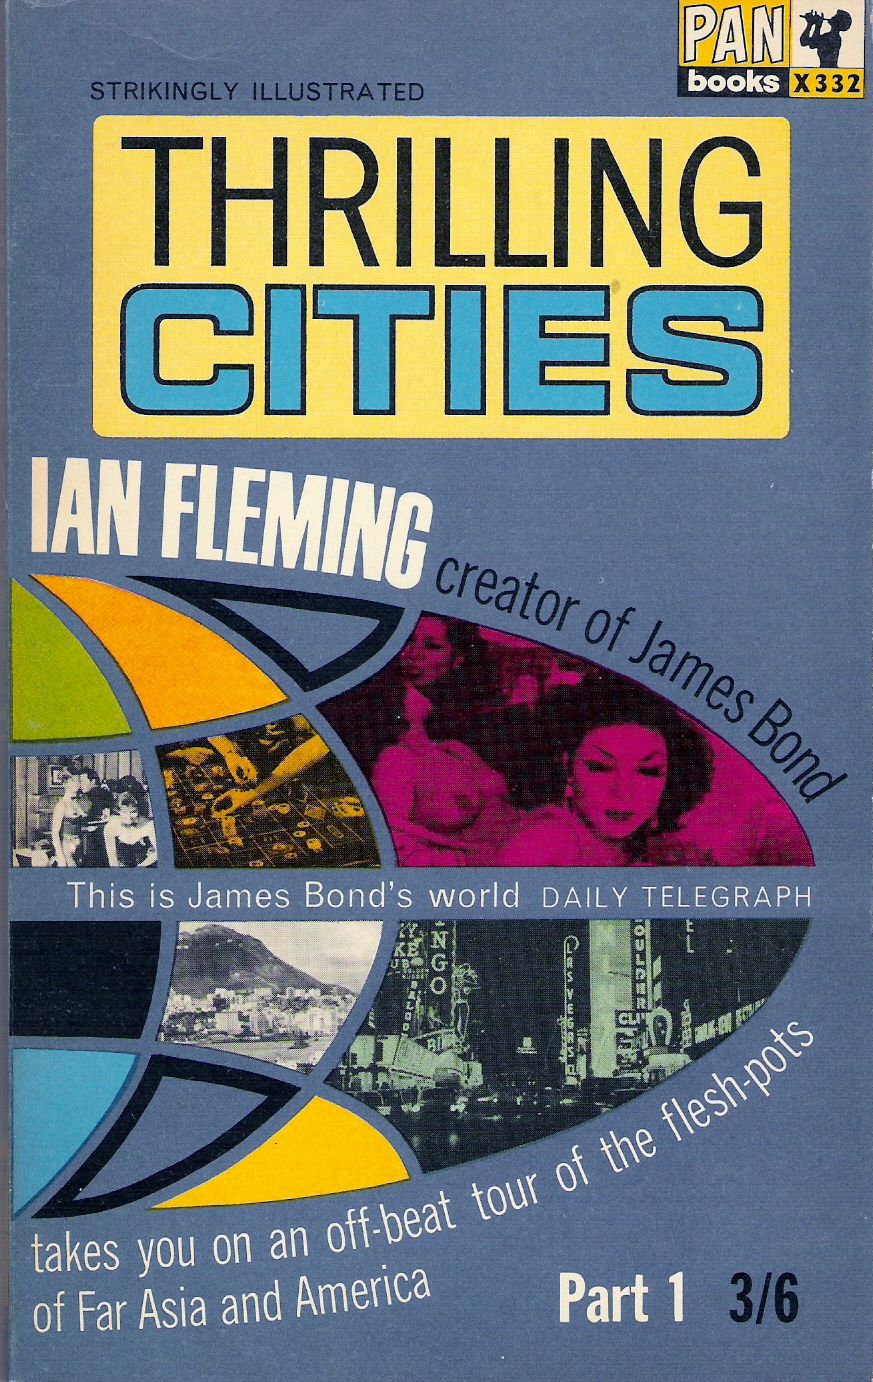 Thrilling cities (Laddade metropoler), del 1 av 2 Ian Fleming